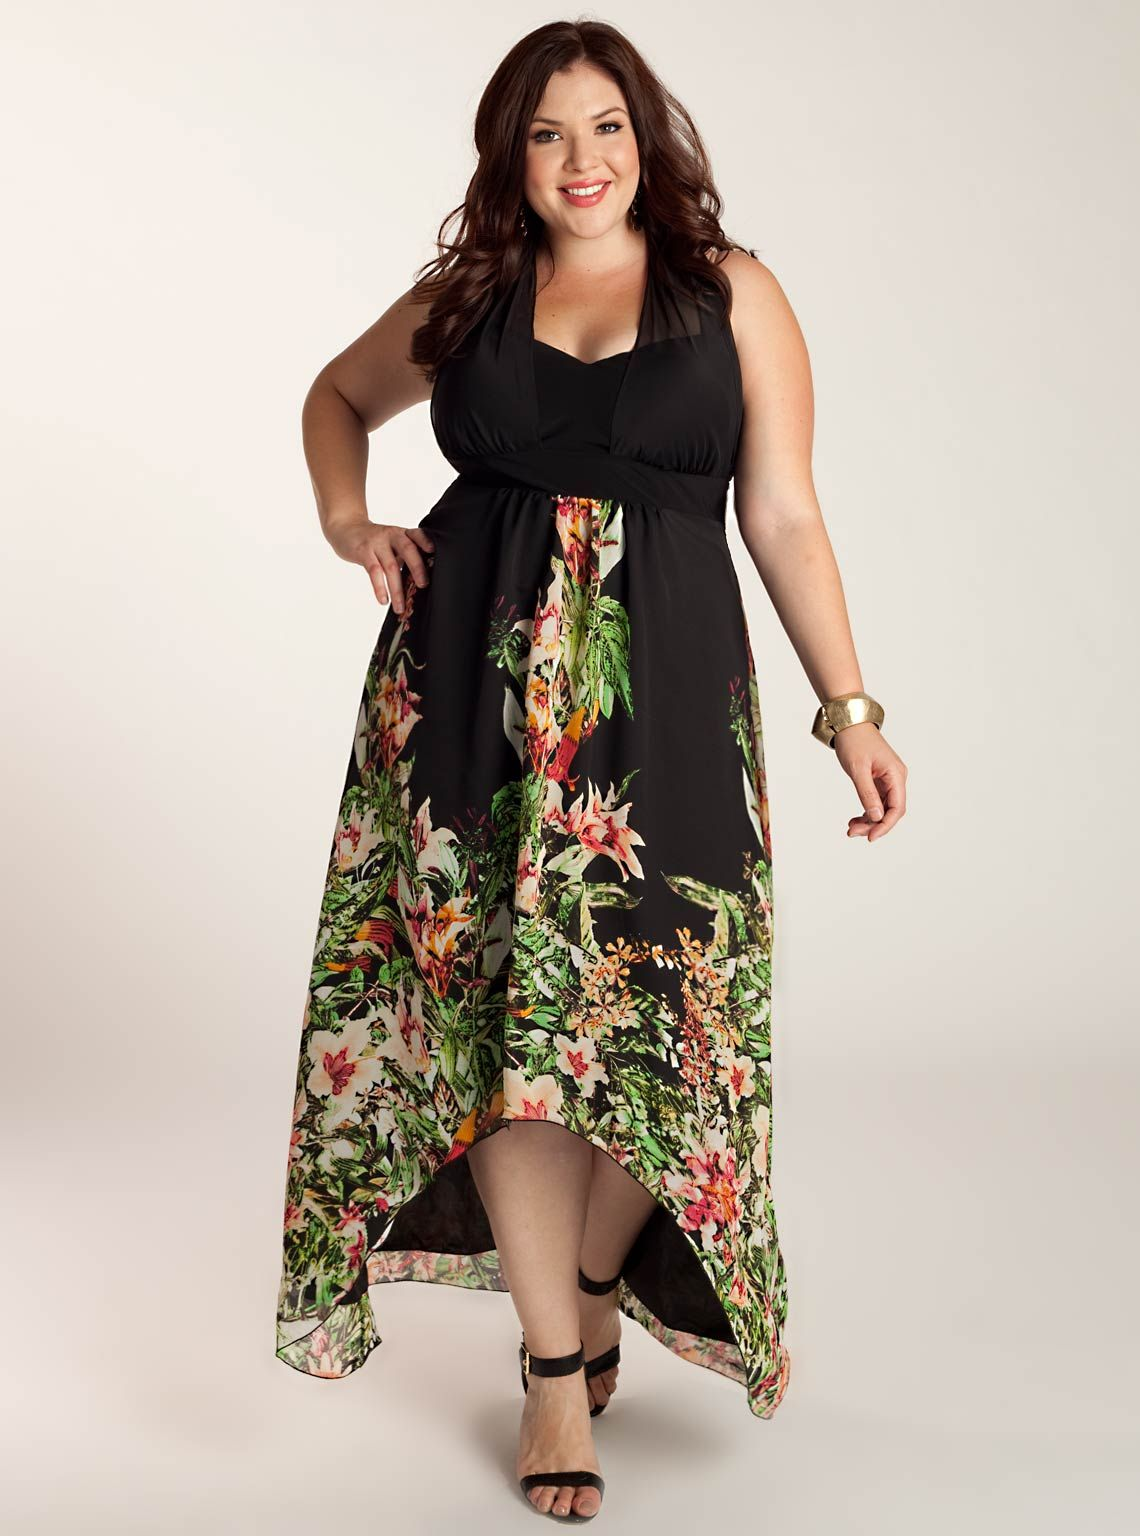 6 Plus Size Womens Clothing For Summer  Plus size dresses, Plus